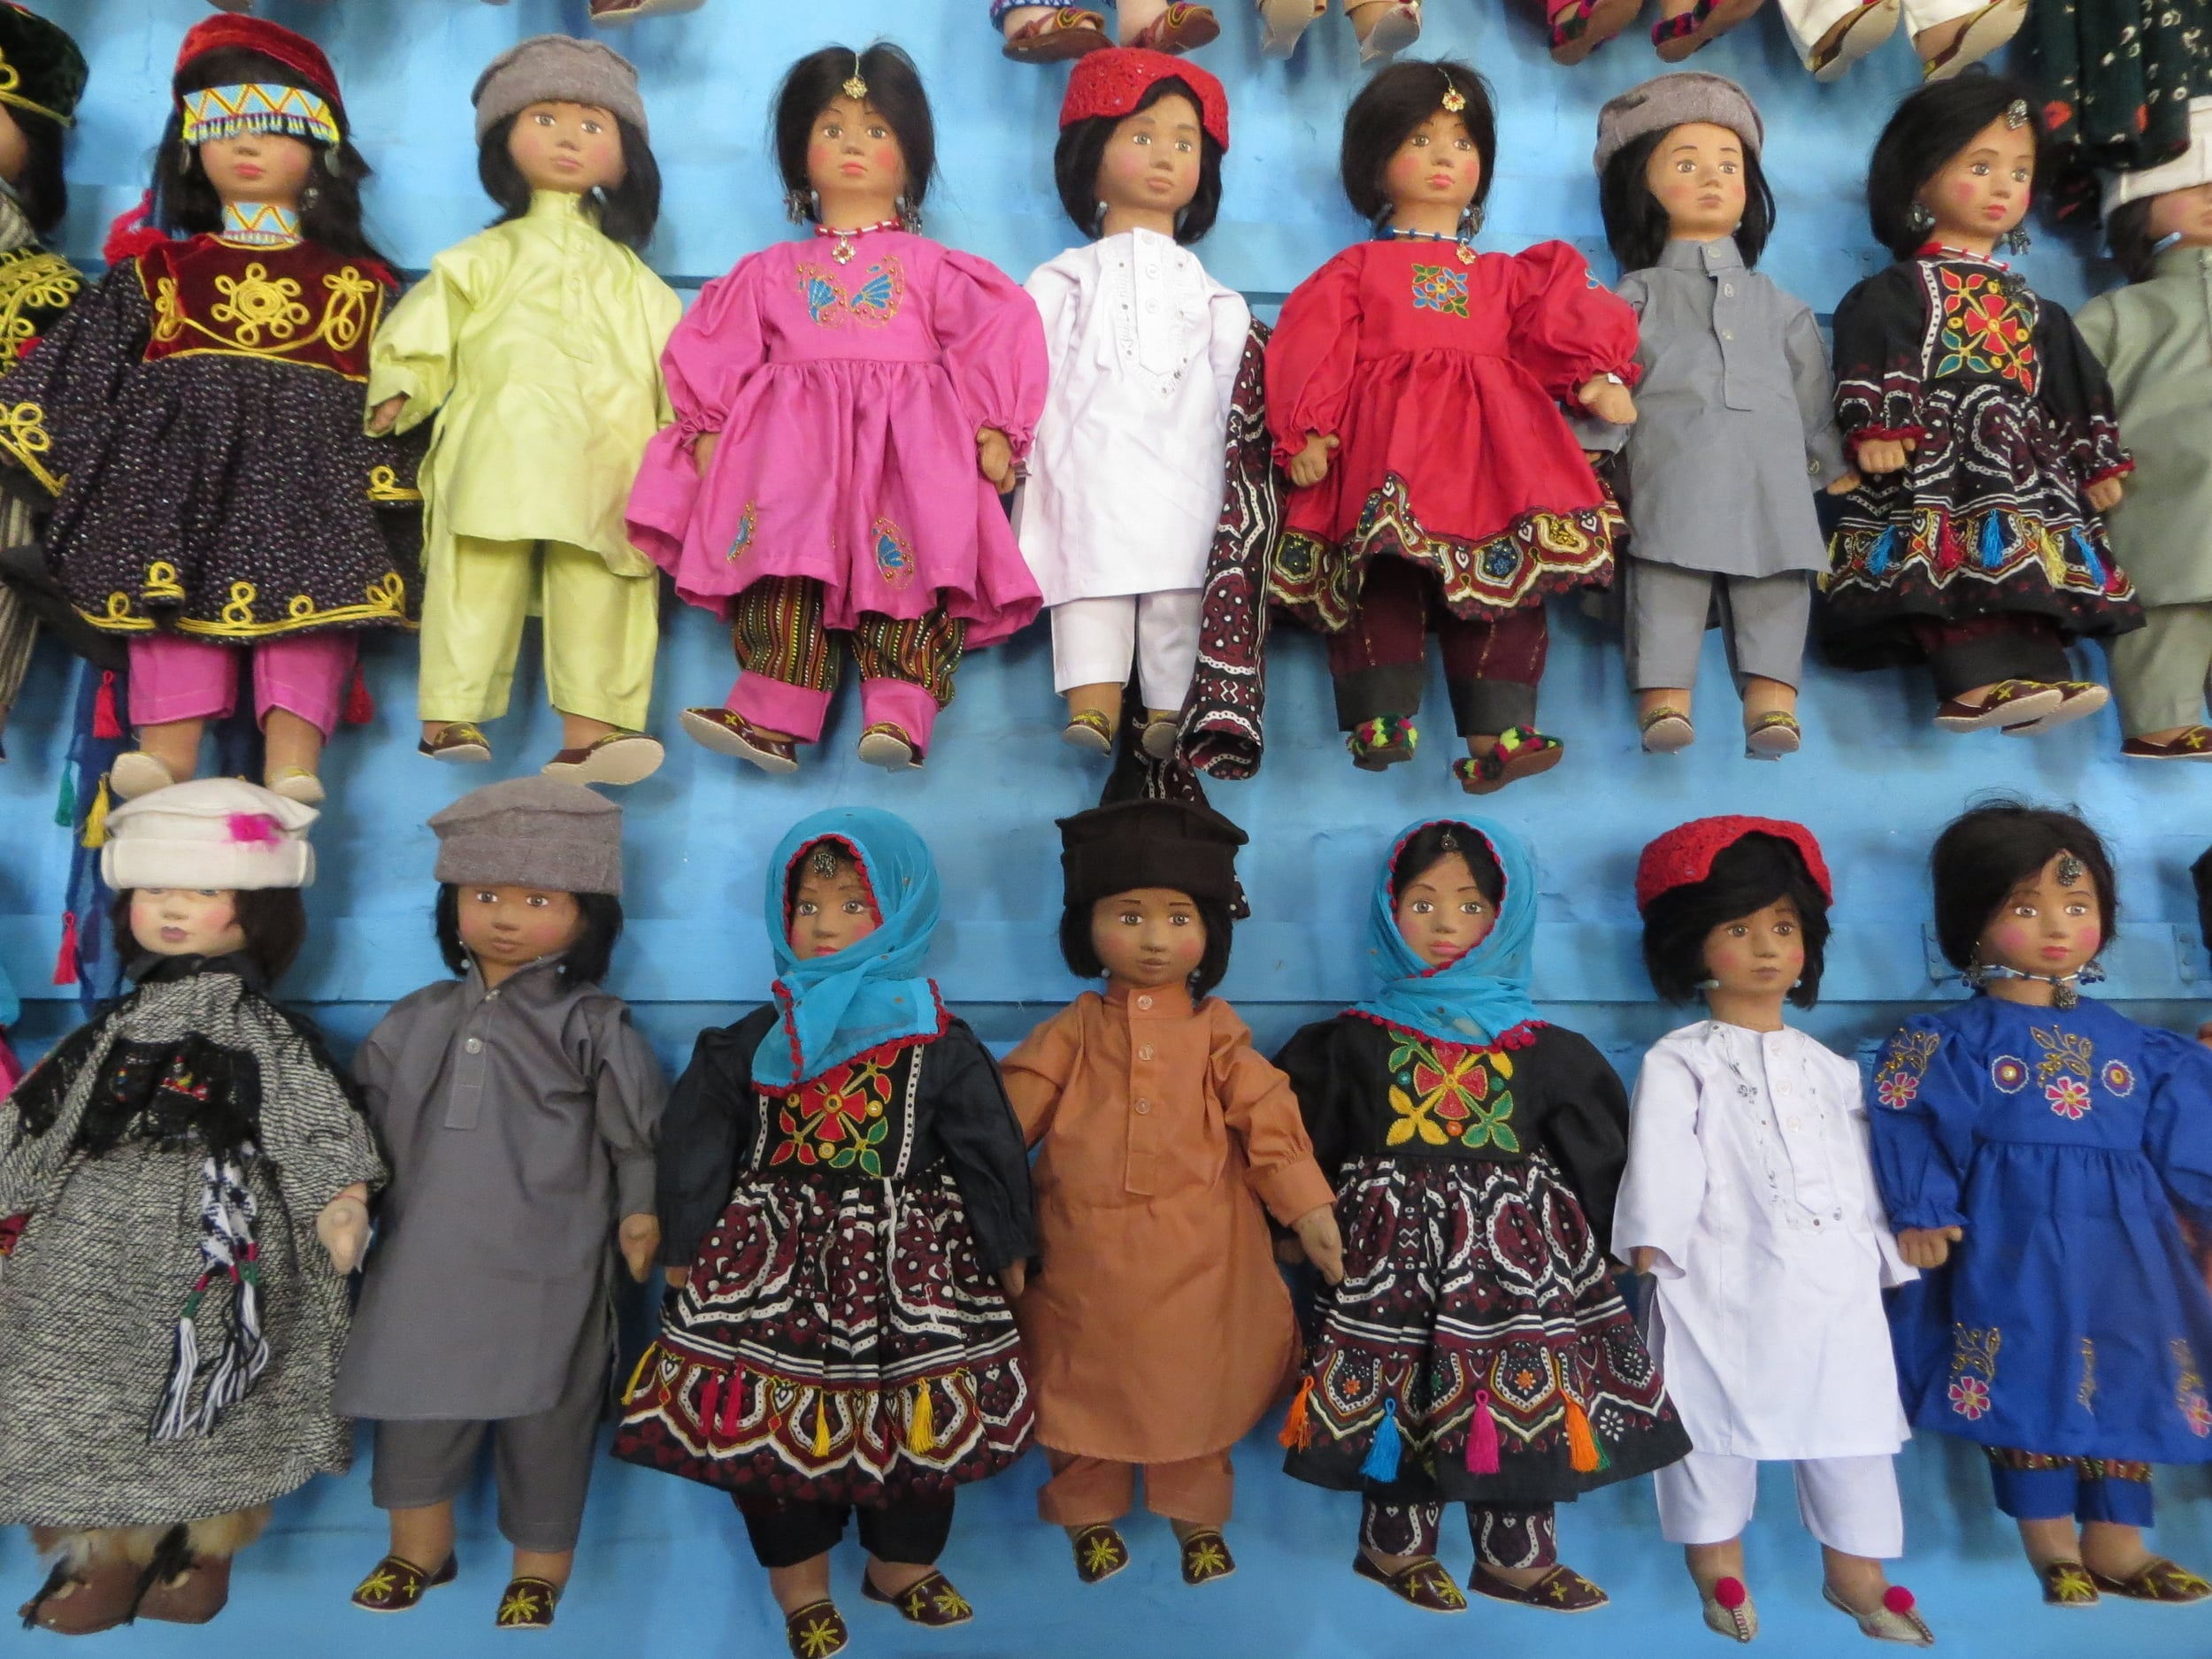 A ROW OF DOLLS DISPLAY THE VARIETY OF TRADITIONAL CLOTHING WORN IN PAKISTAN AT A SHOP OUTSIDE THE RAFIPEER CULTURAL CENTER IN LAHORE. PHOTO BY BEENISH AHMED.